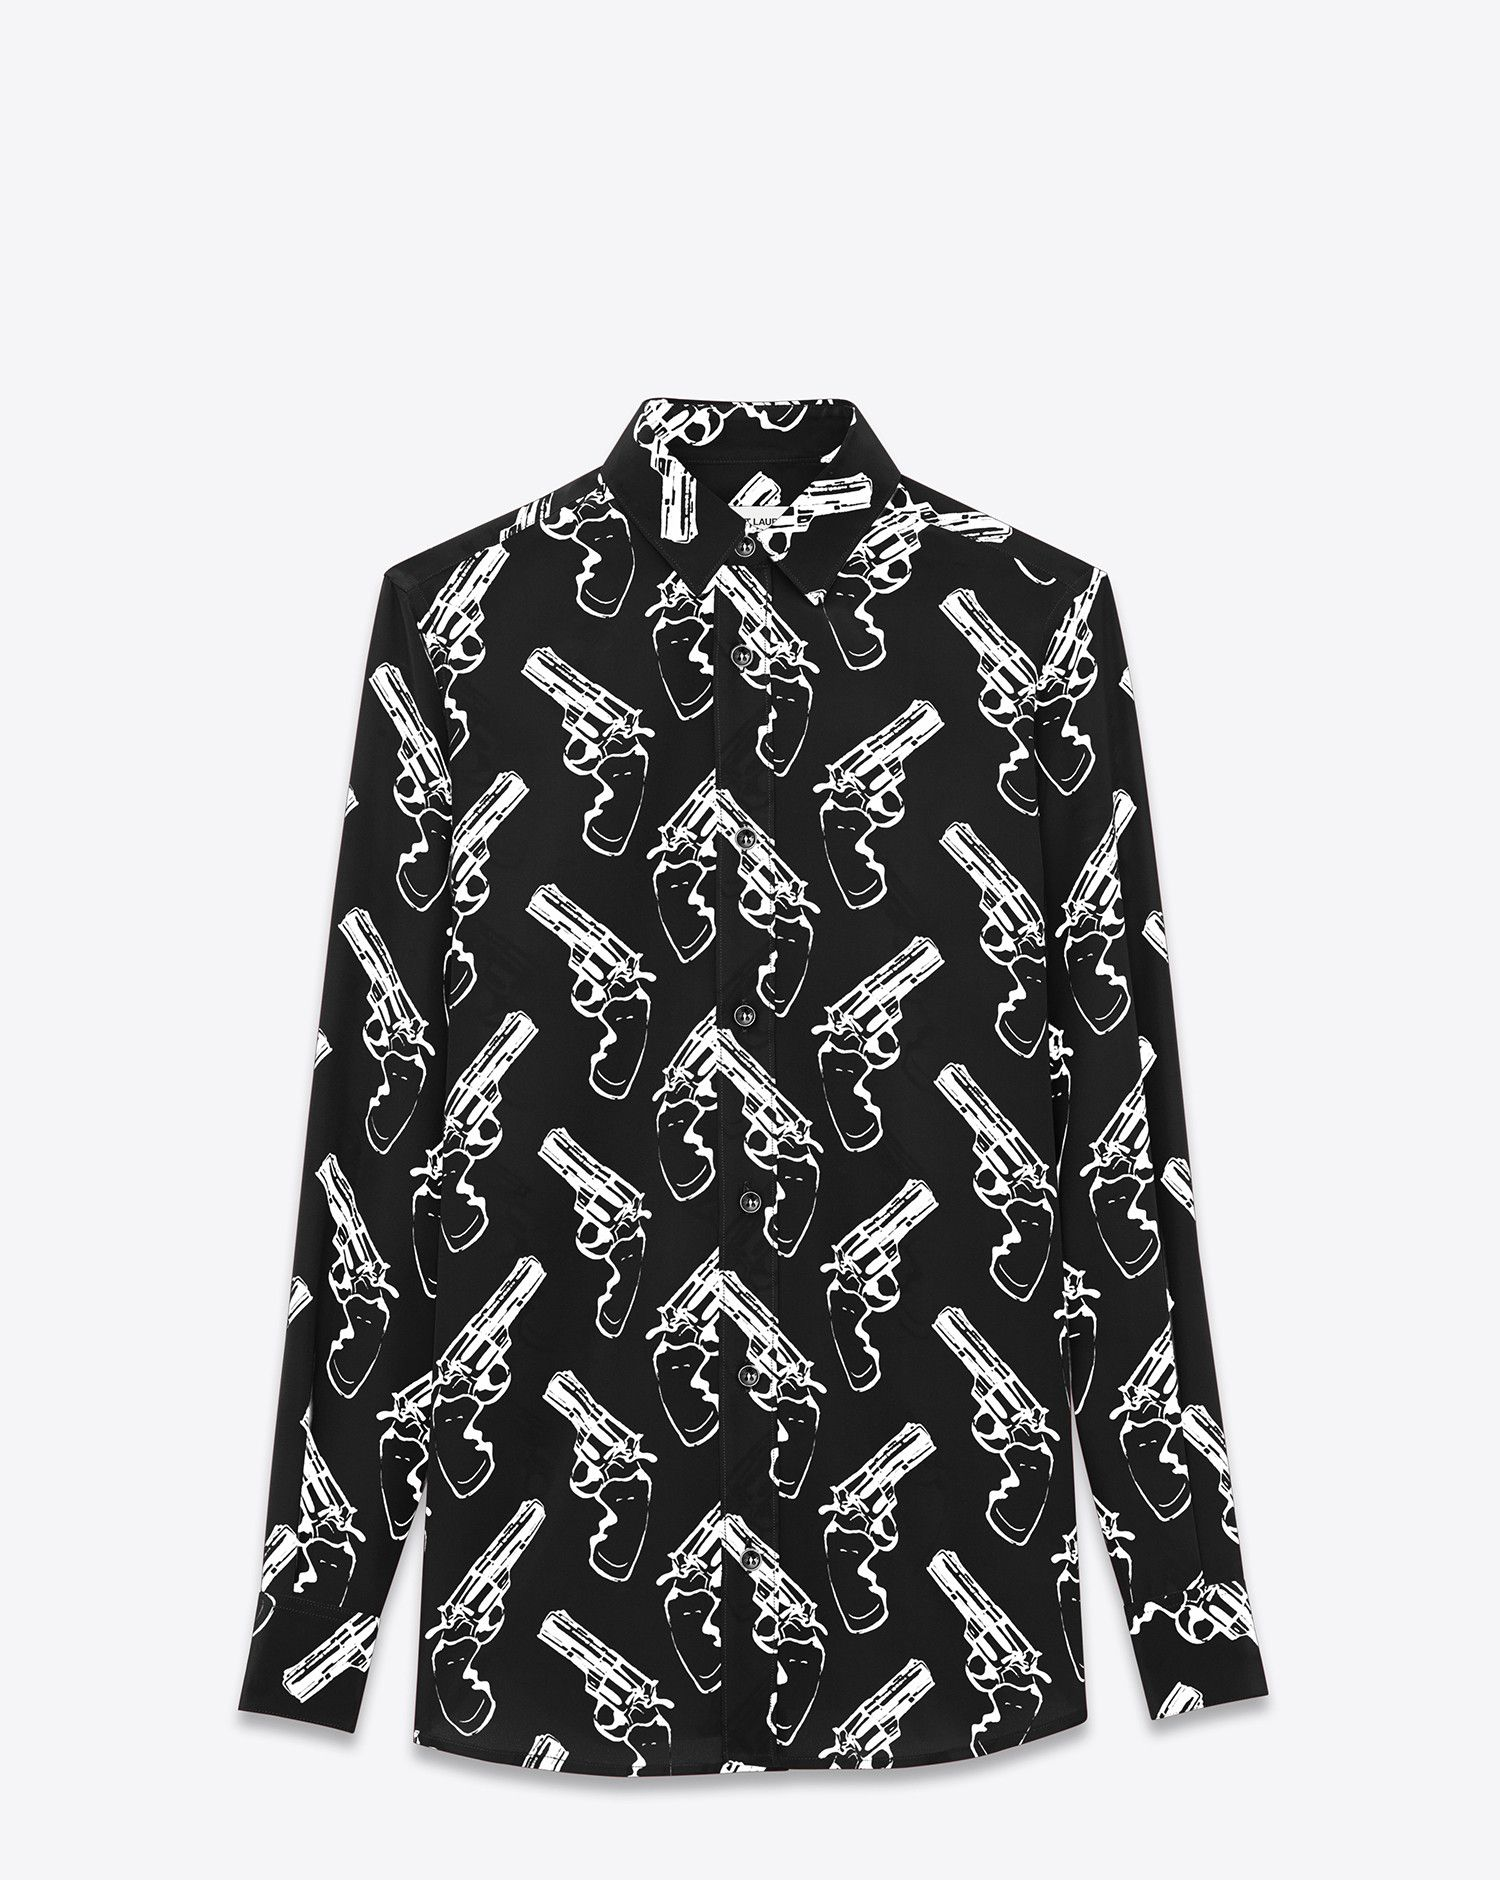 18f4a5289dd Saint Laurent Oversized Paris Collar SHIRT IN Black And White Gun Pop  Printed Silk CRÊPE